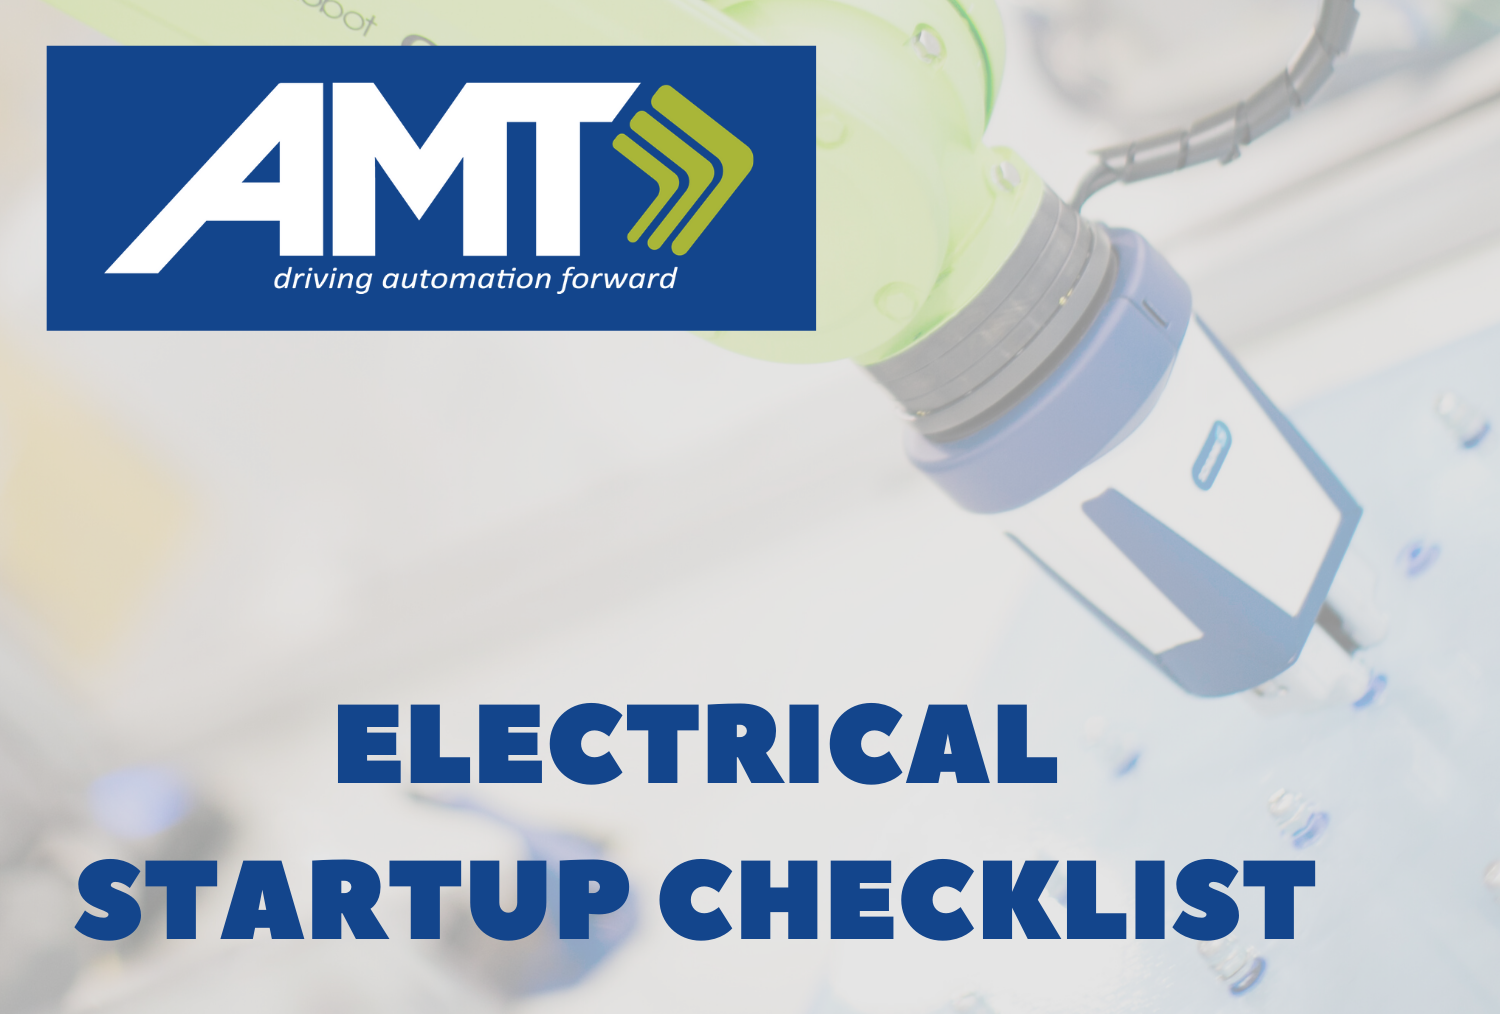 Copy of AMT Electrical Startup Checklist